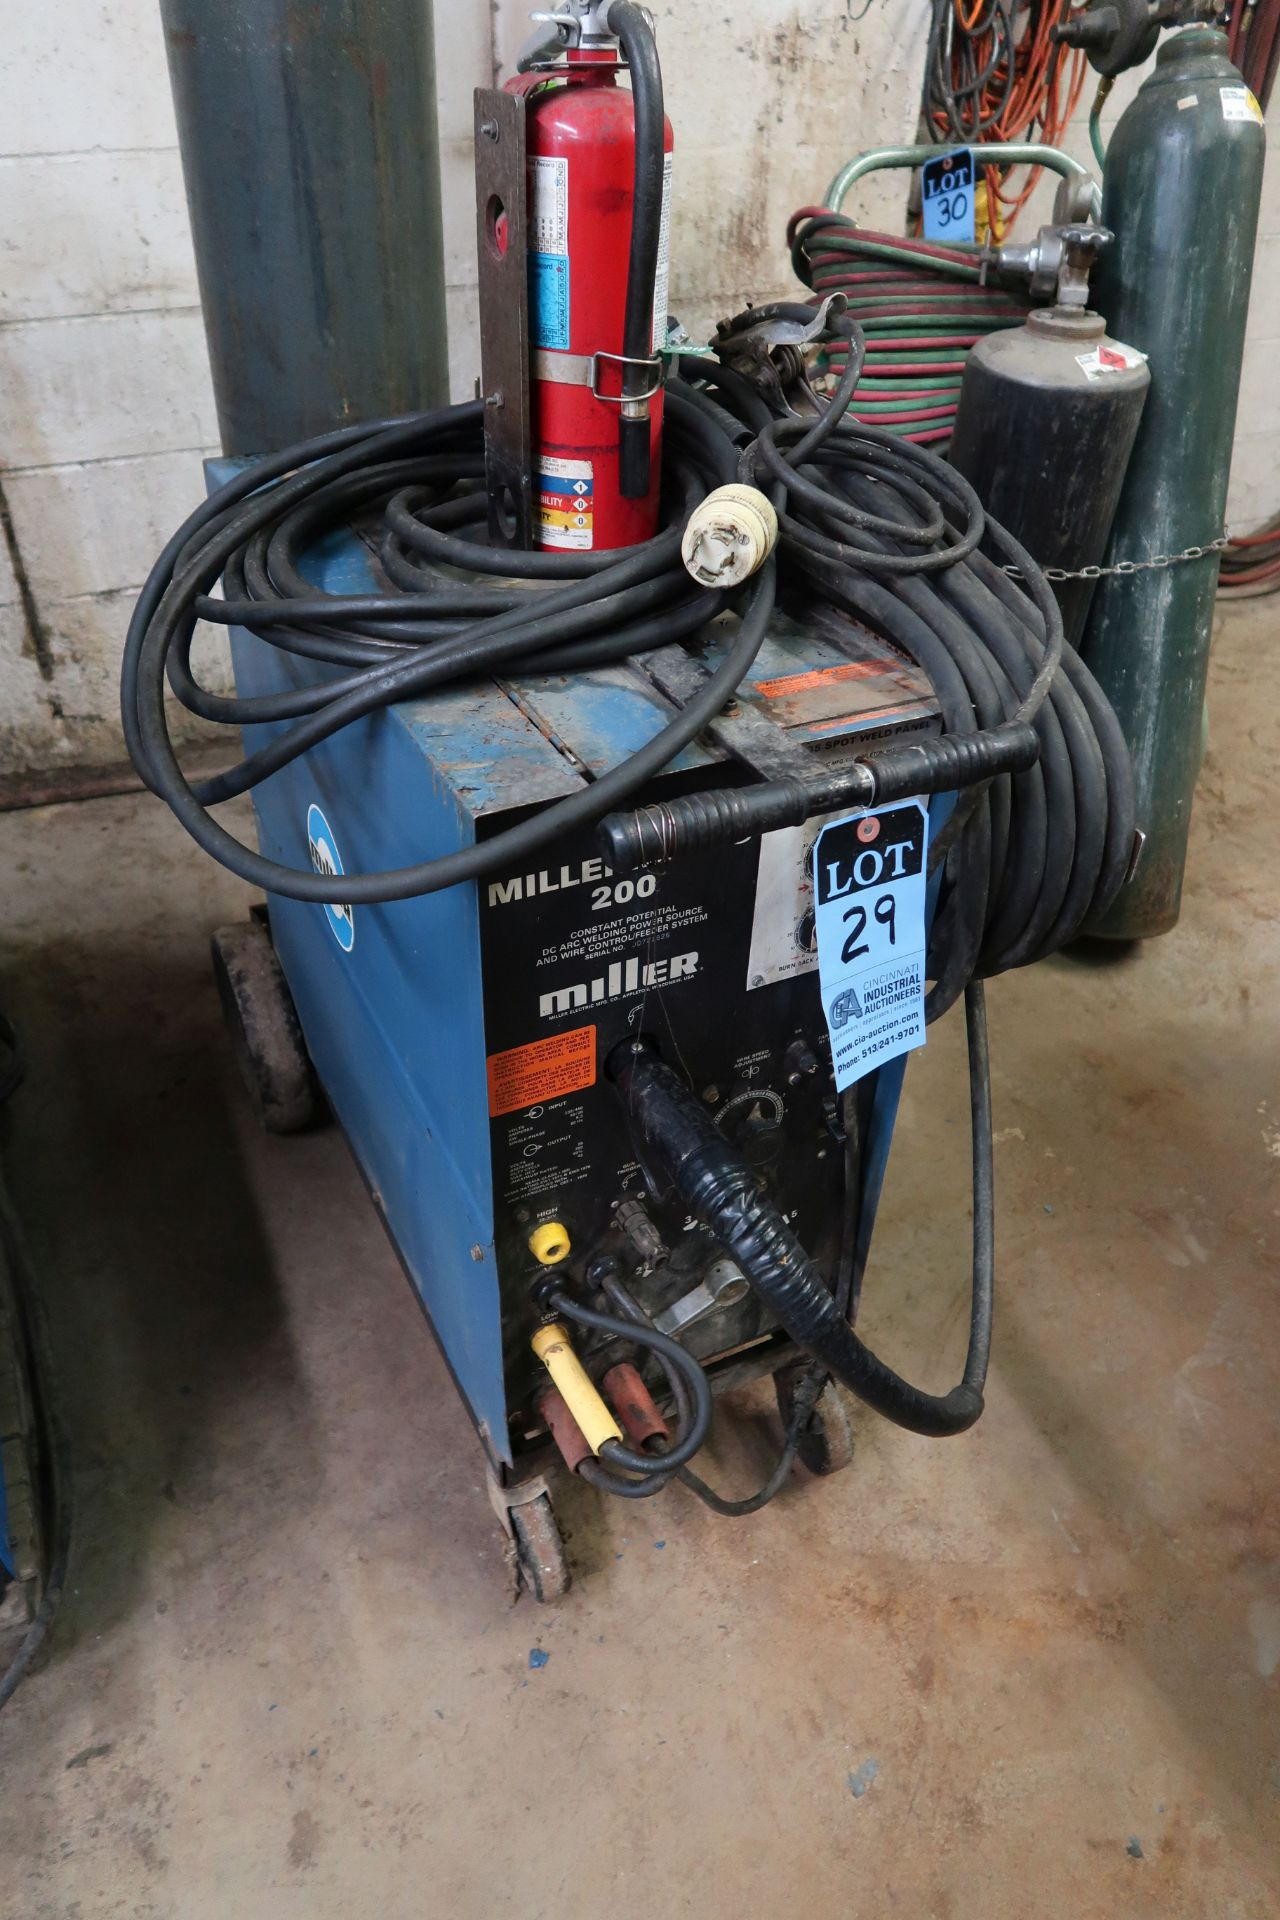 200 AMP MILLER MODEL MILLERMATIC 200 CONSTANT POTENTIAL DC ARC WELDING POWER SOURCE AND WIRE CONTROL